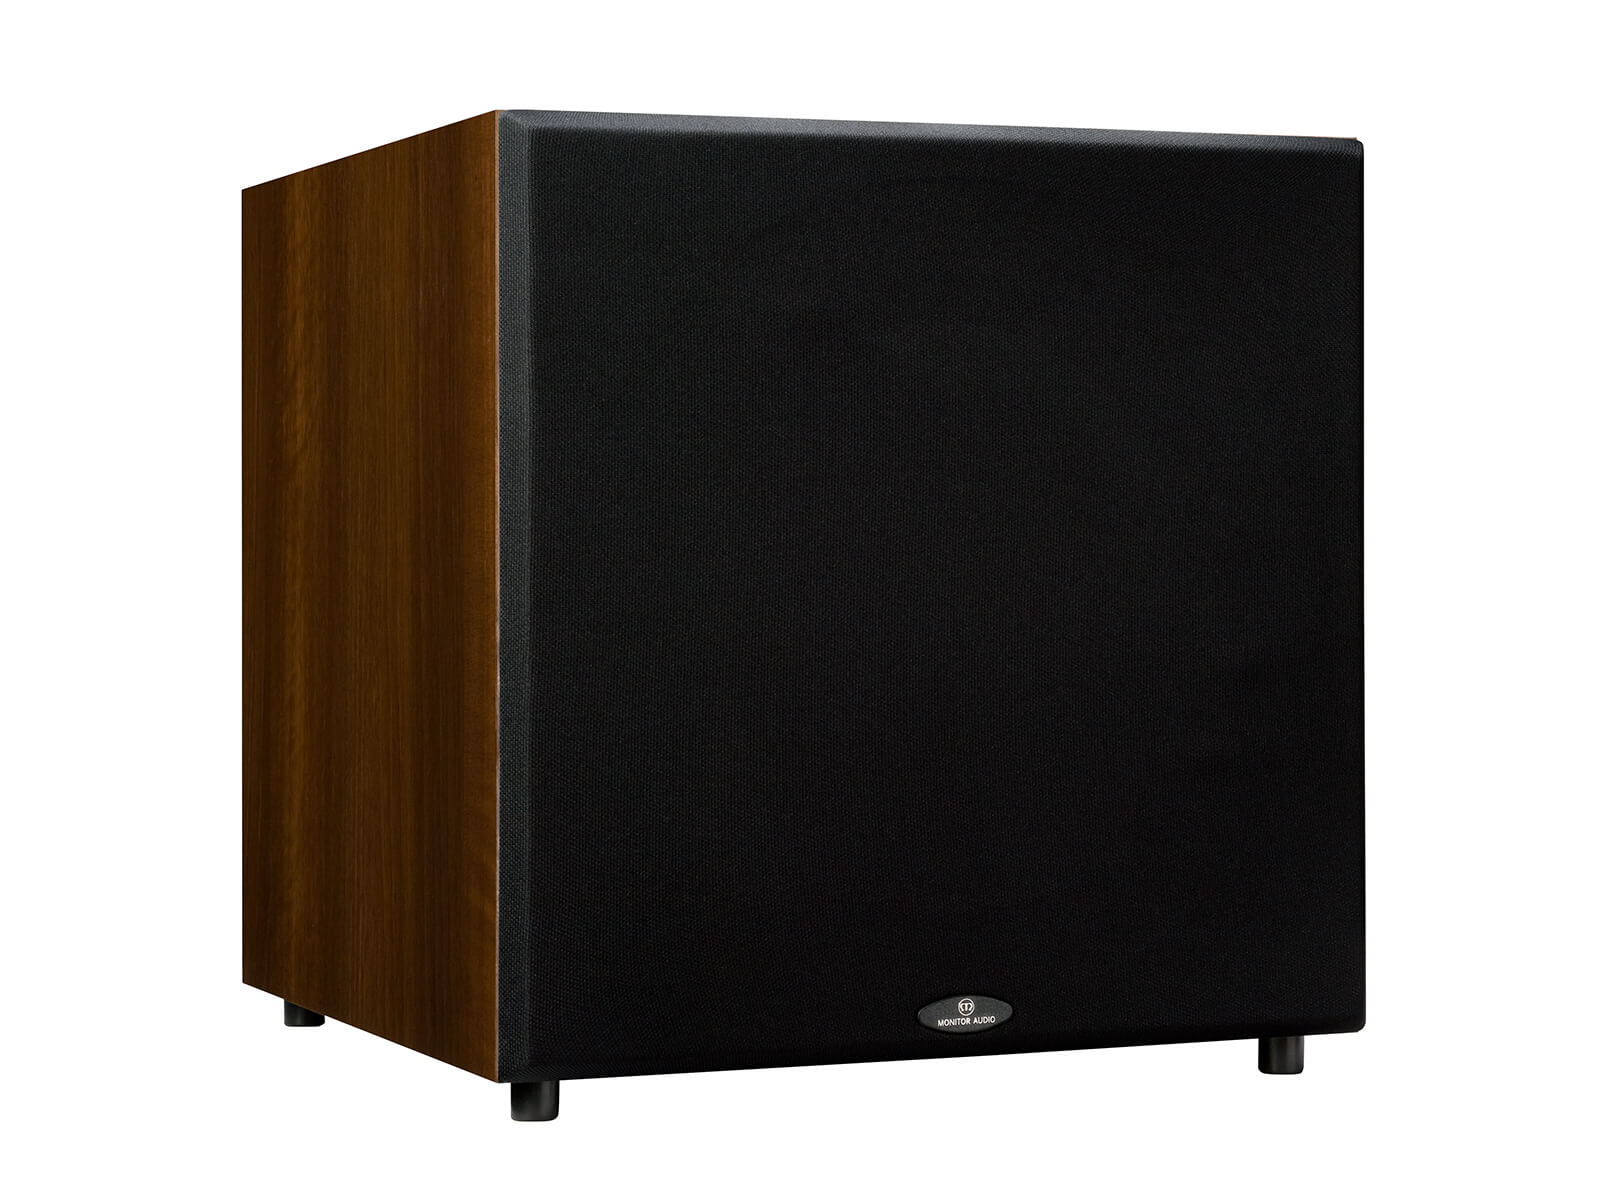 Monitor MRW-10 subwoofer, featuring a grill and a walnut vinyl finish.